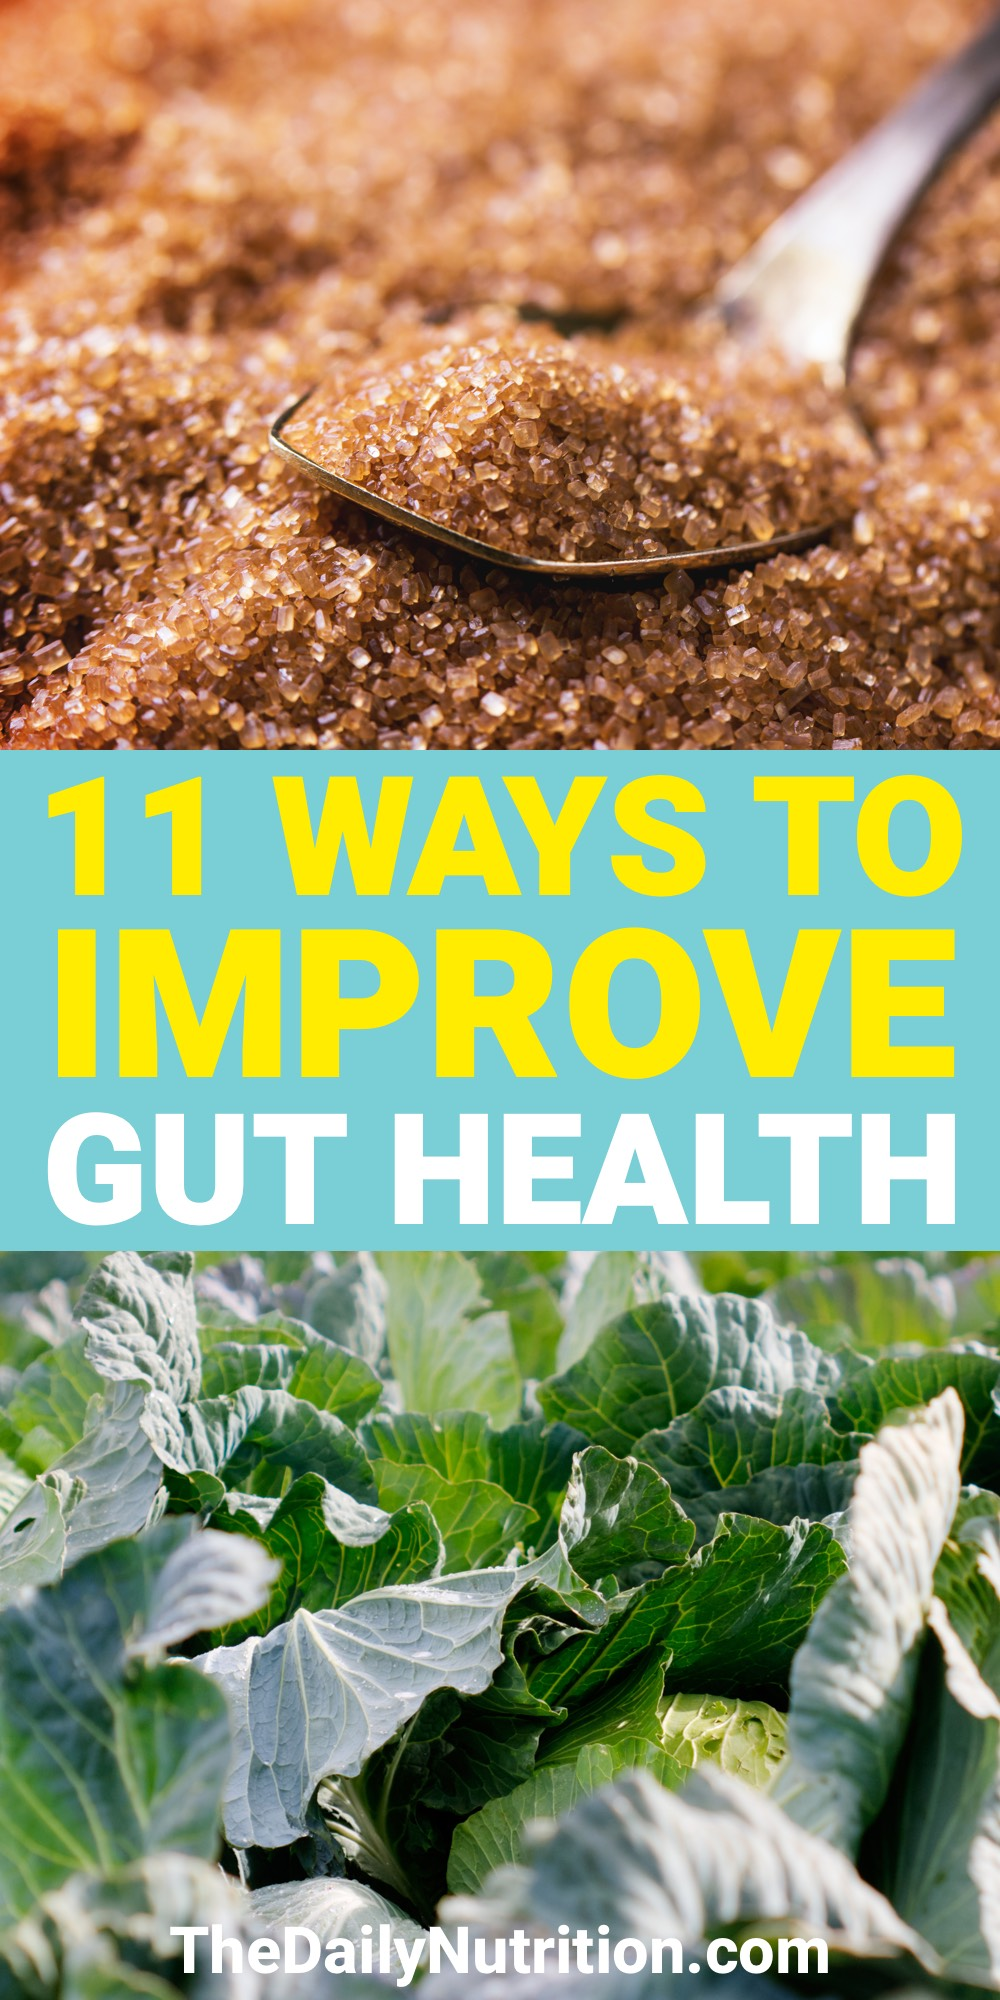 Gut health has a lot to do with your lifestyle. Here are 11 ways to improve gut health without having to change your lifestyle drastically.